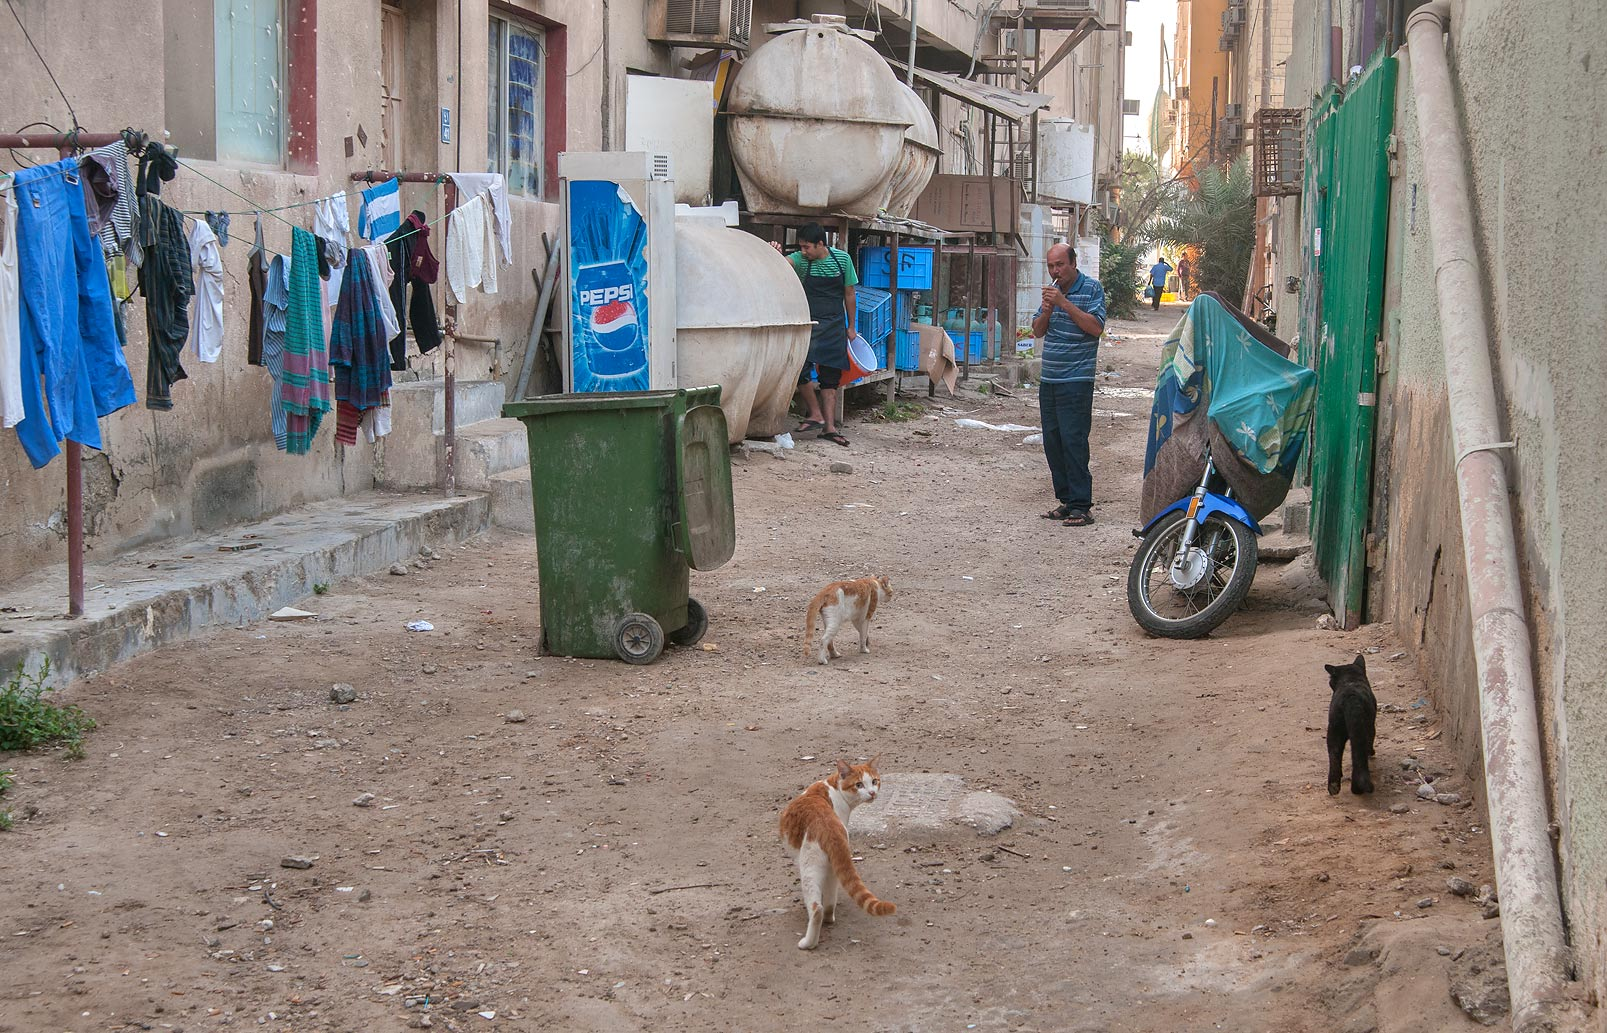 Alleyway with cats near Abdullah Bin Thani St., Musheirib area. Doha, Qatar